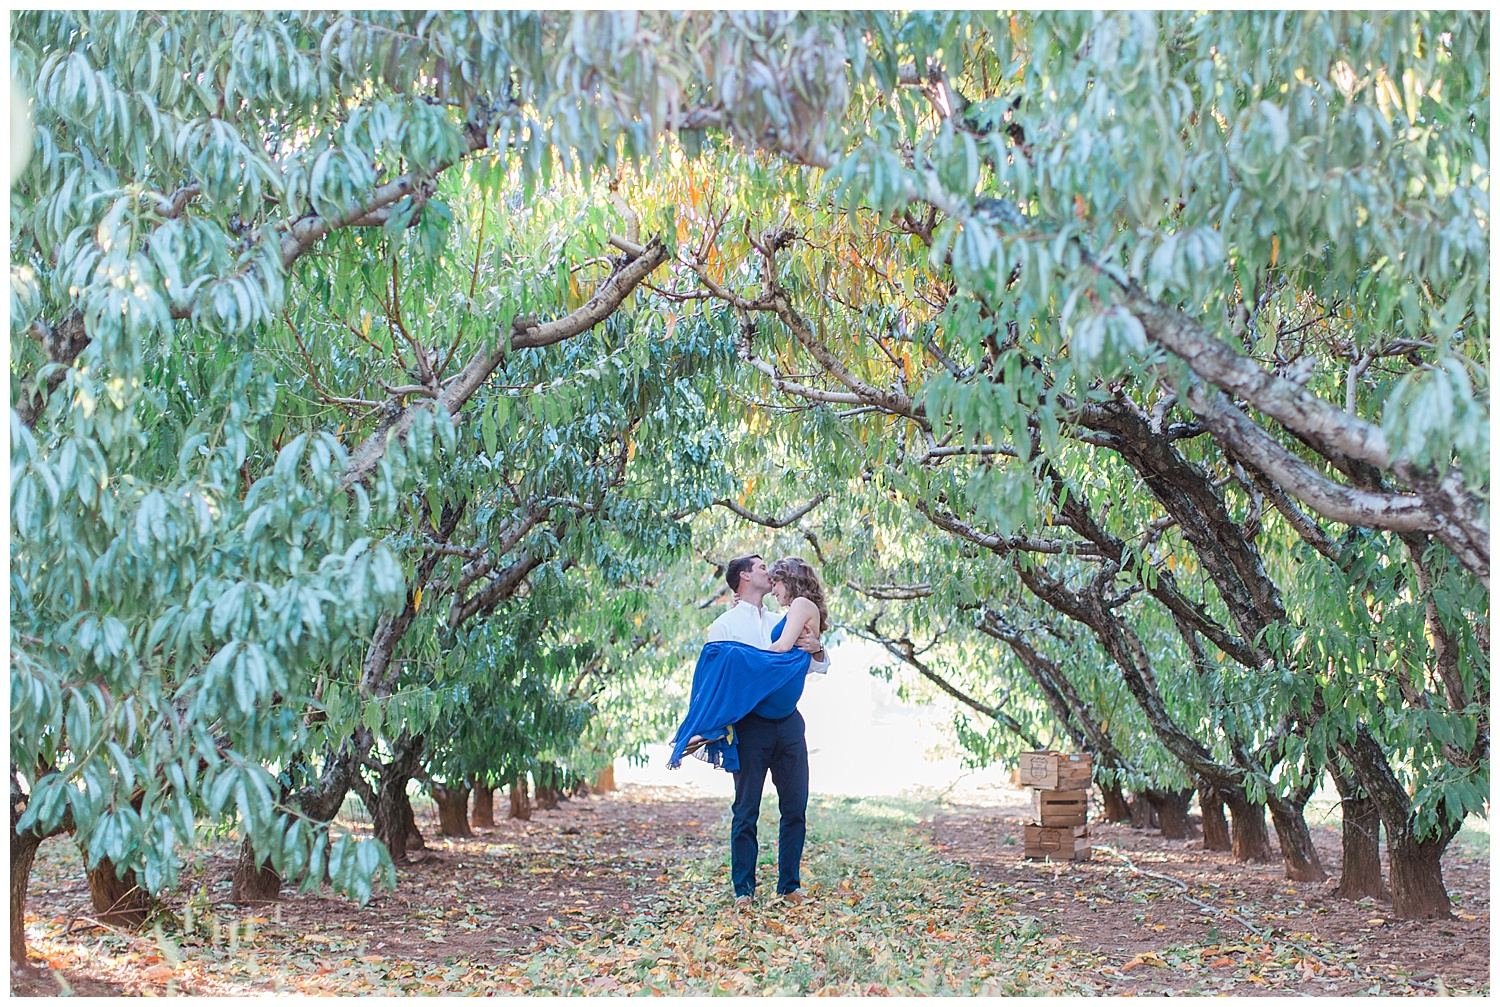 charlottesville_wedding_photographer_chiles_peach_orchard17.jpg